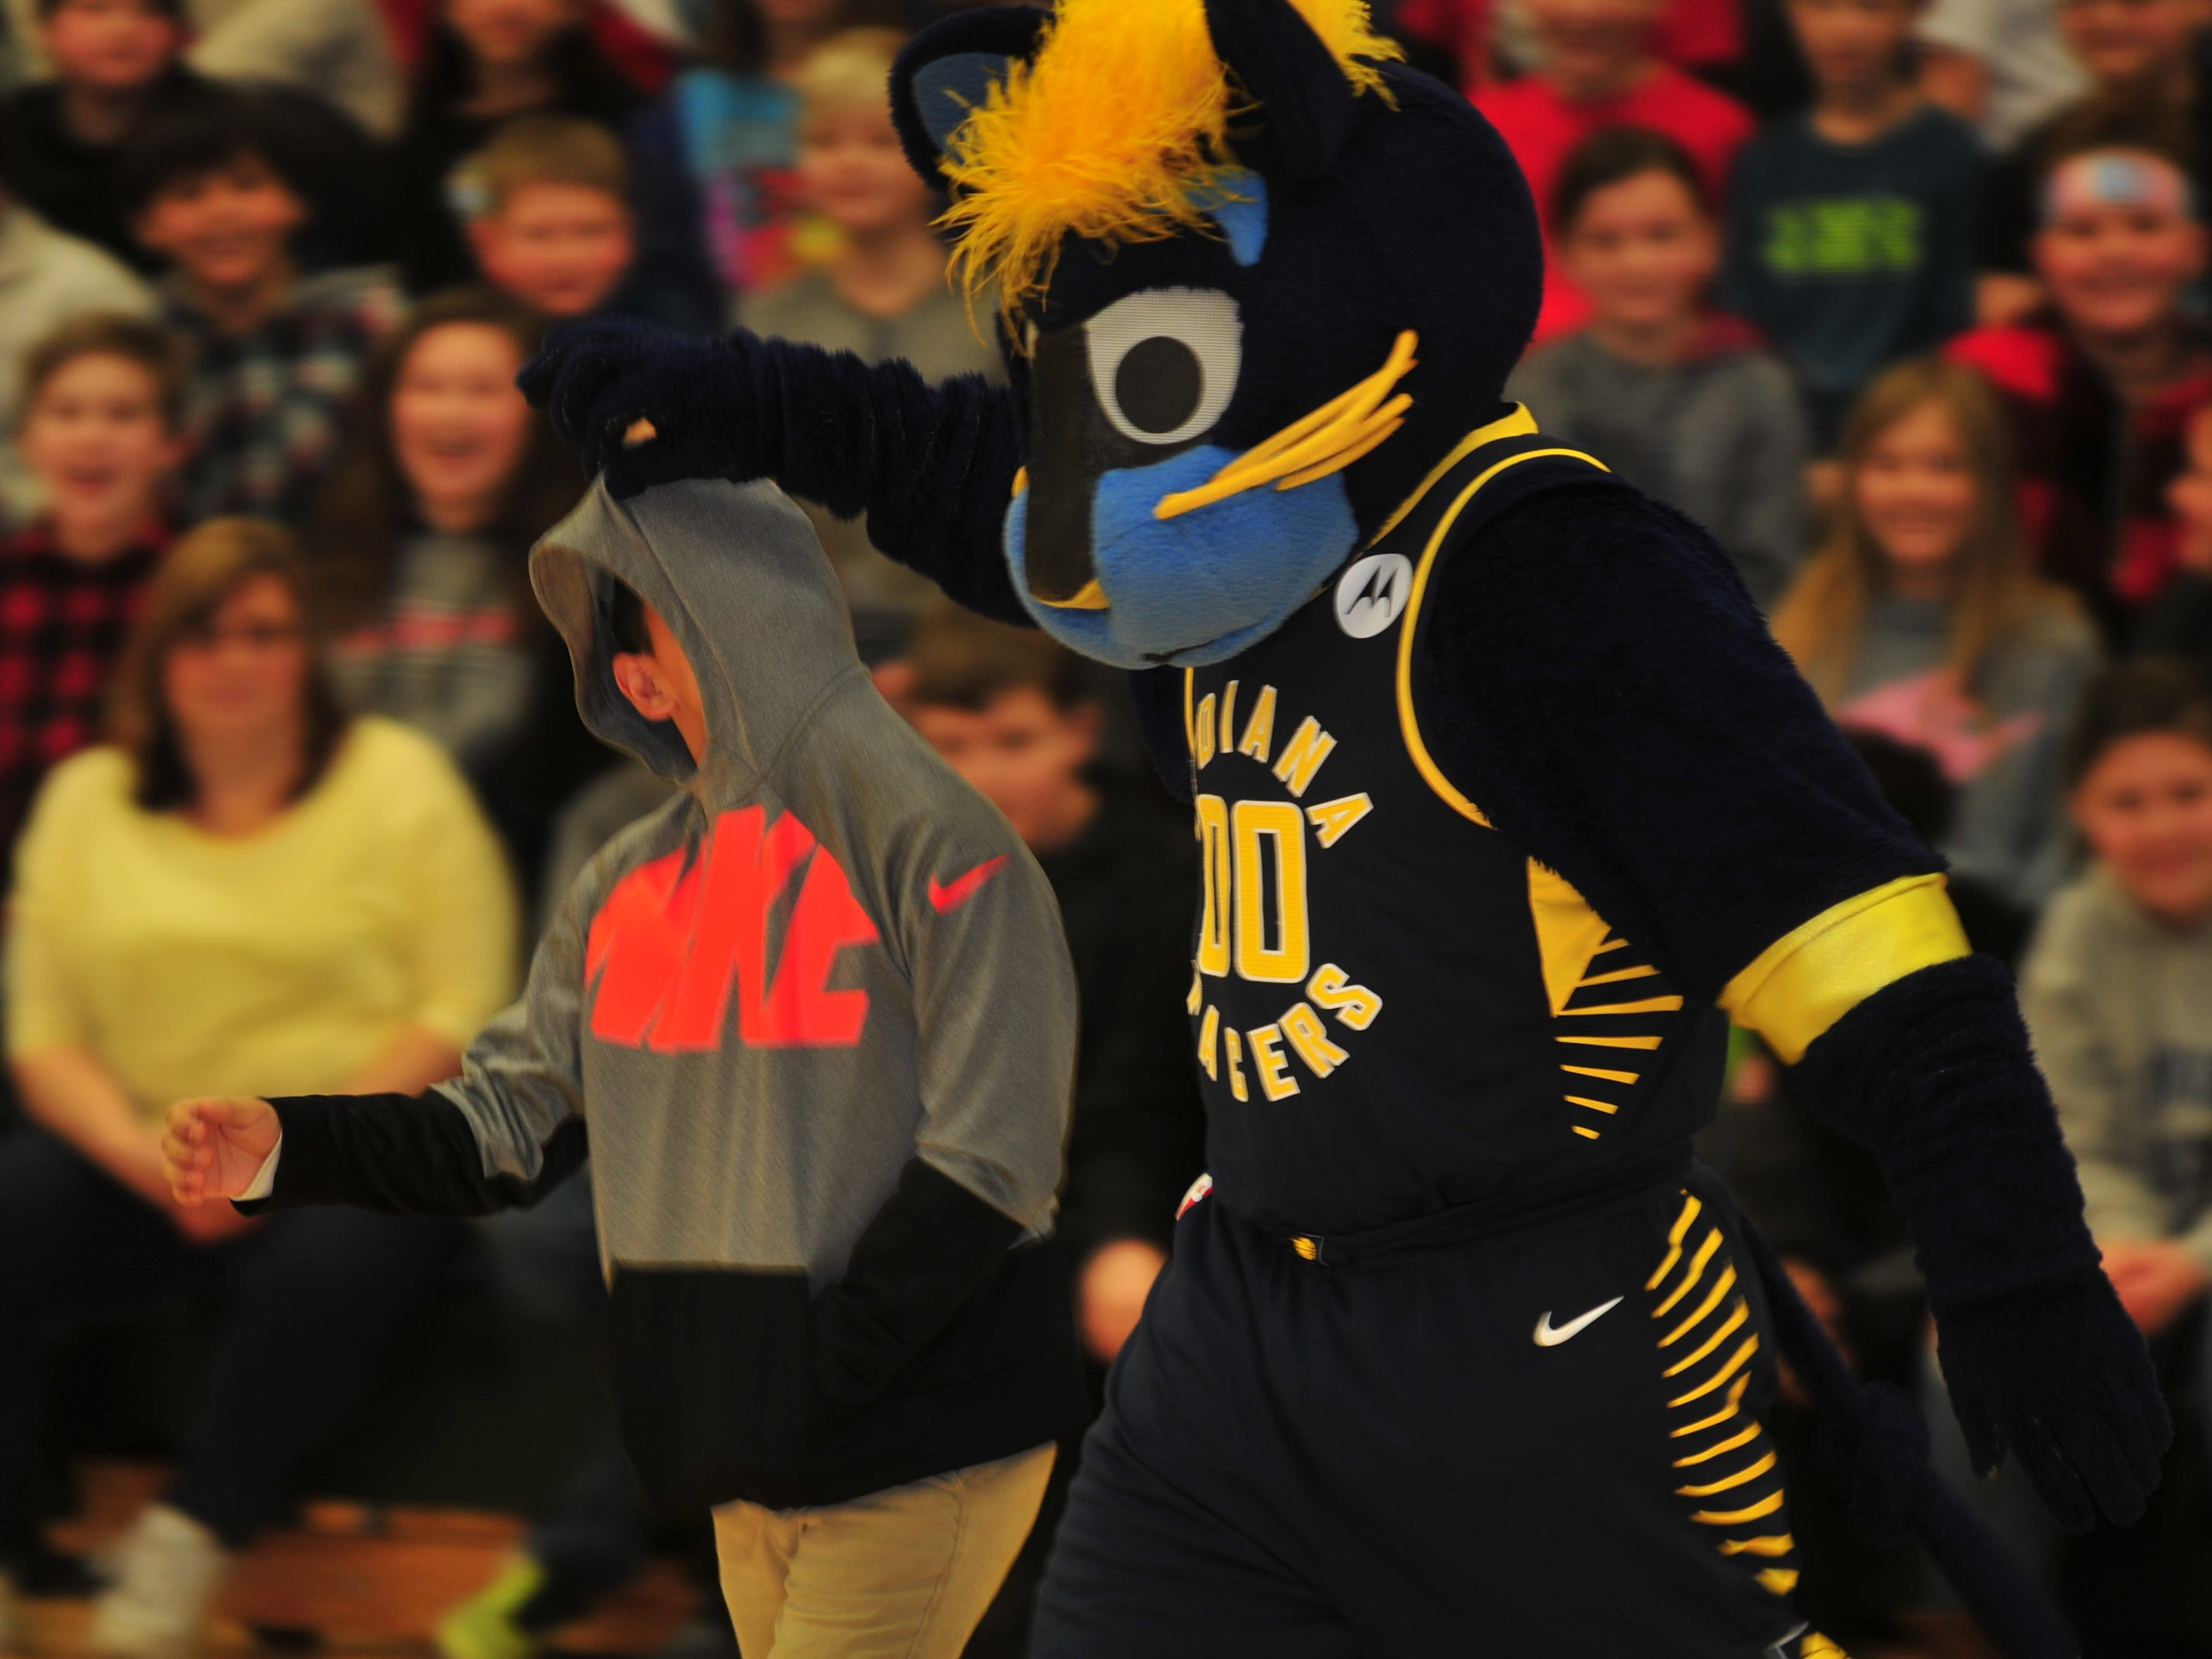 Boomer, mascot for the NBA's Indiana Pacers, brings a volunteer onto the basketball court Wednesday in Dennis Intermediate School.